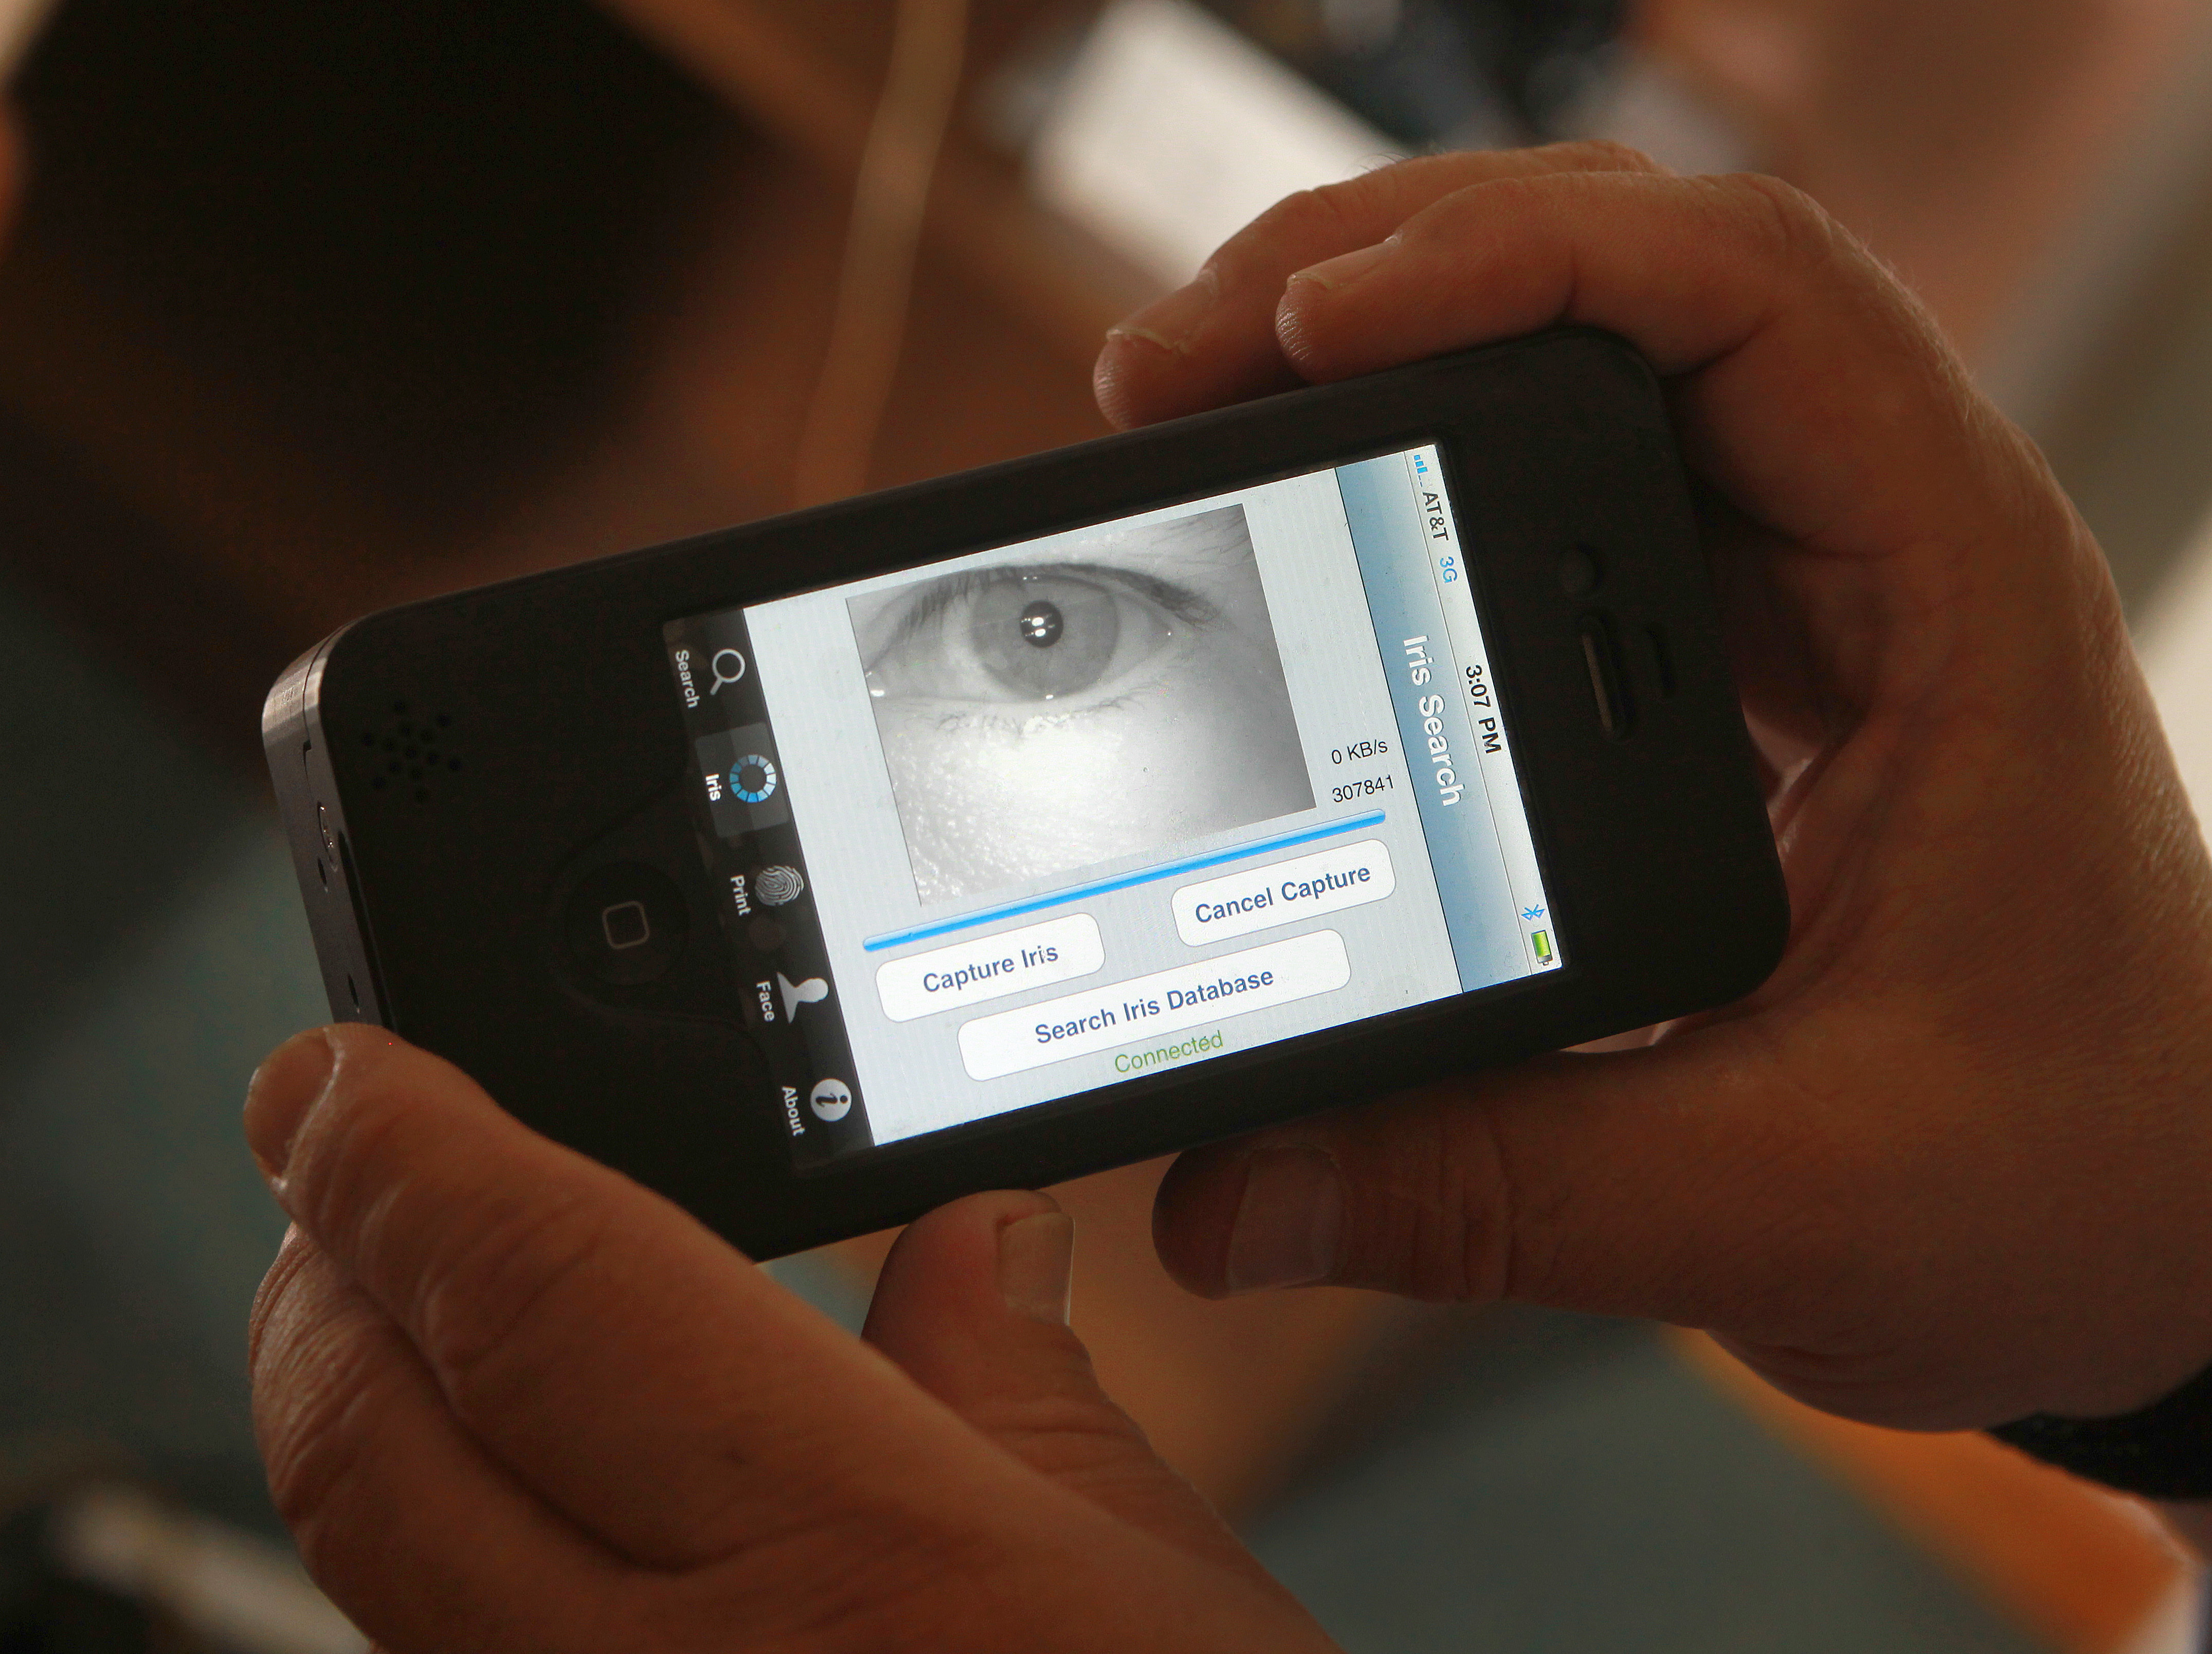 PLYMOUTH - JULY 15: After scanning the iris, an image appears on the Mobile Offender Recognition and Information System (MORIS) for comparison in a central database. The MORIS is a multi-modal biometric identification device on a smart phone that can take a photograph, an iris scan or a fingerprint and compare the results against a central data base. (Photo by Barry Chin/The Boston Globe via Getty Images)